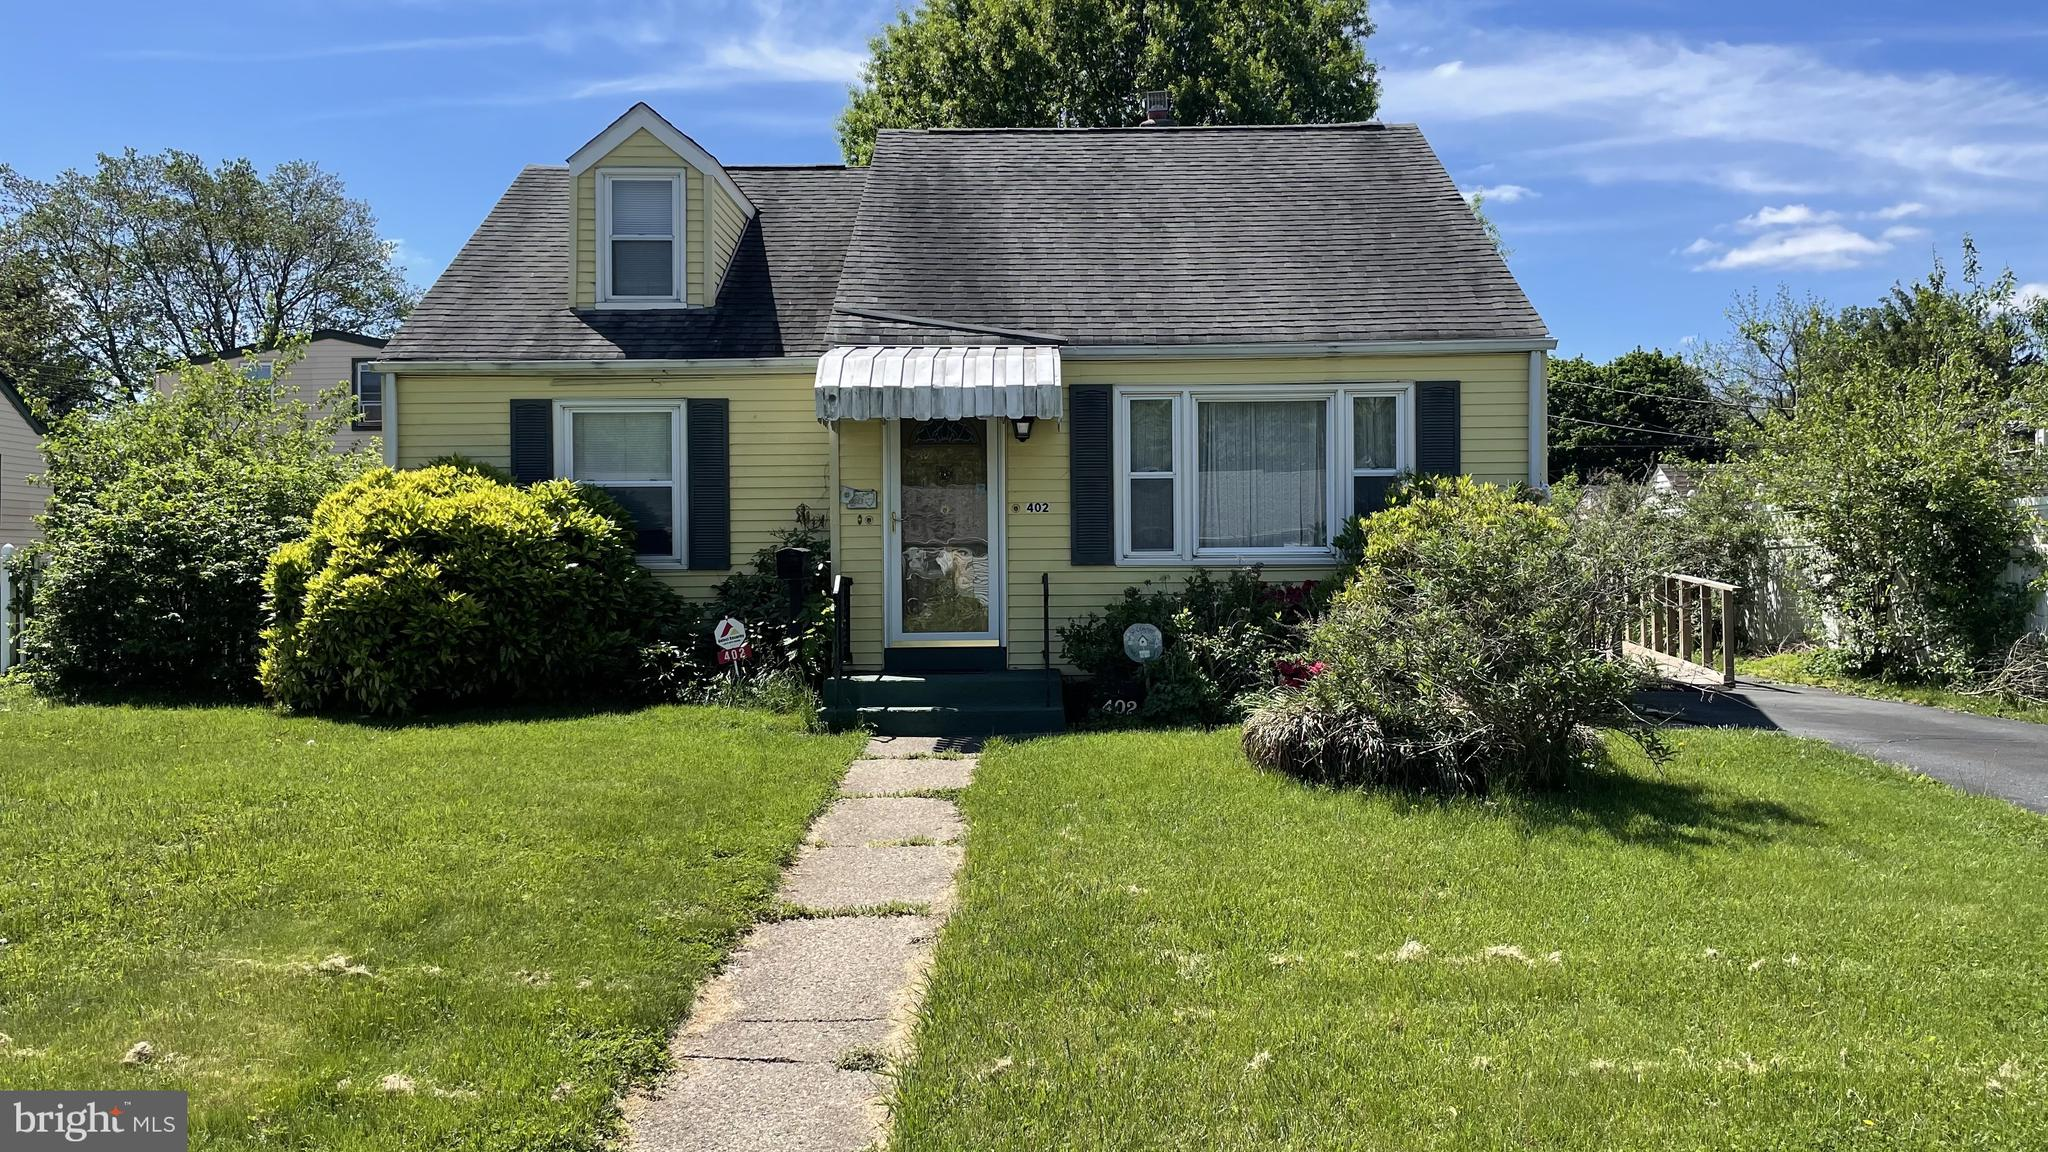 Large 3 bedroom 2 full bath cape cod. The home has hardwood floors, crown molding, central air, gas